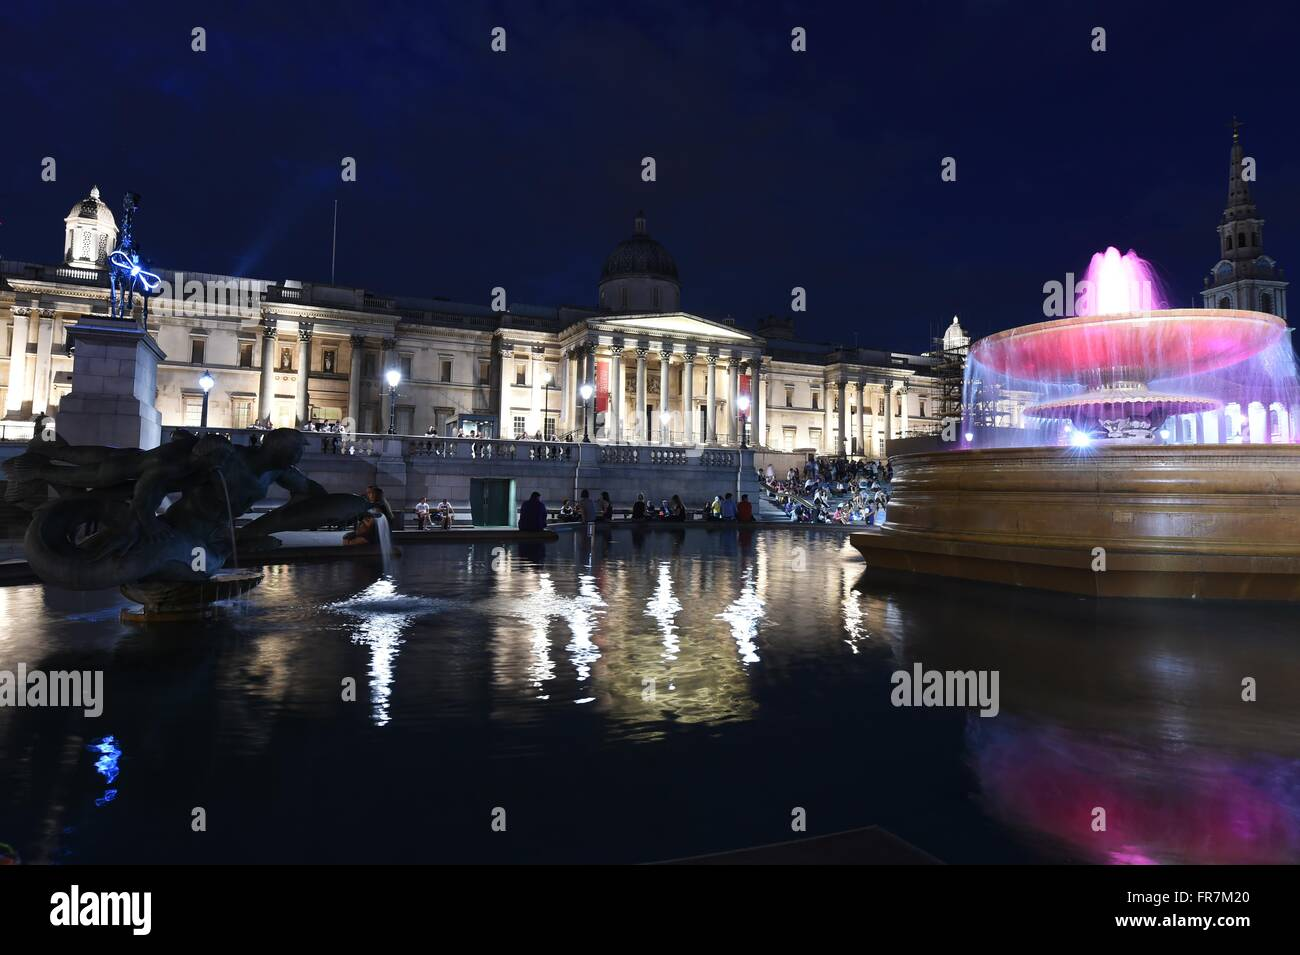 National Gallery, Trafalgar Square, art gallery in London, UK - Stock Image